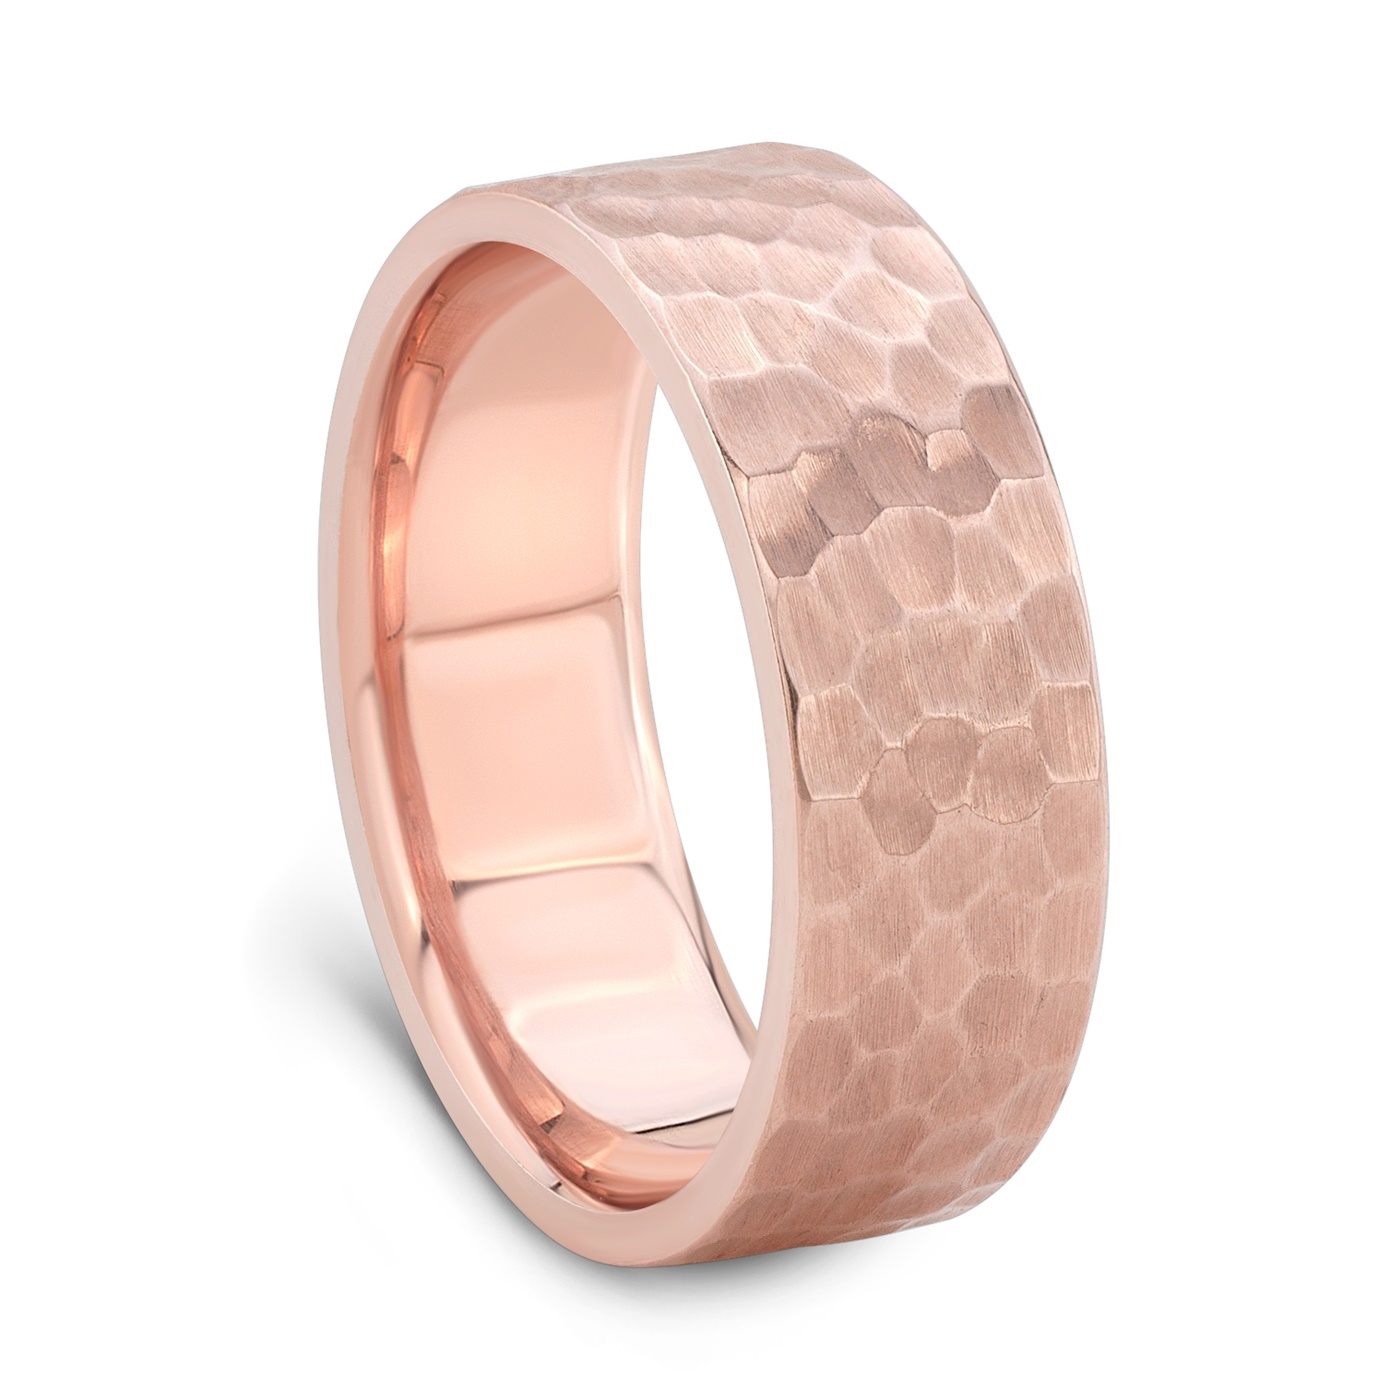 Mens Rose Gold Wedding Band.Hammered Finish Rose Gold Wedding Band For Men 7mm Wide Rose Gold Ring